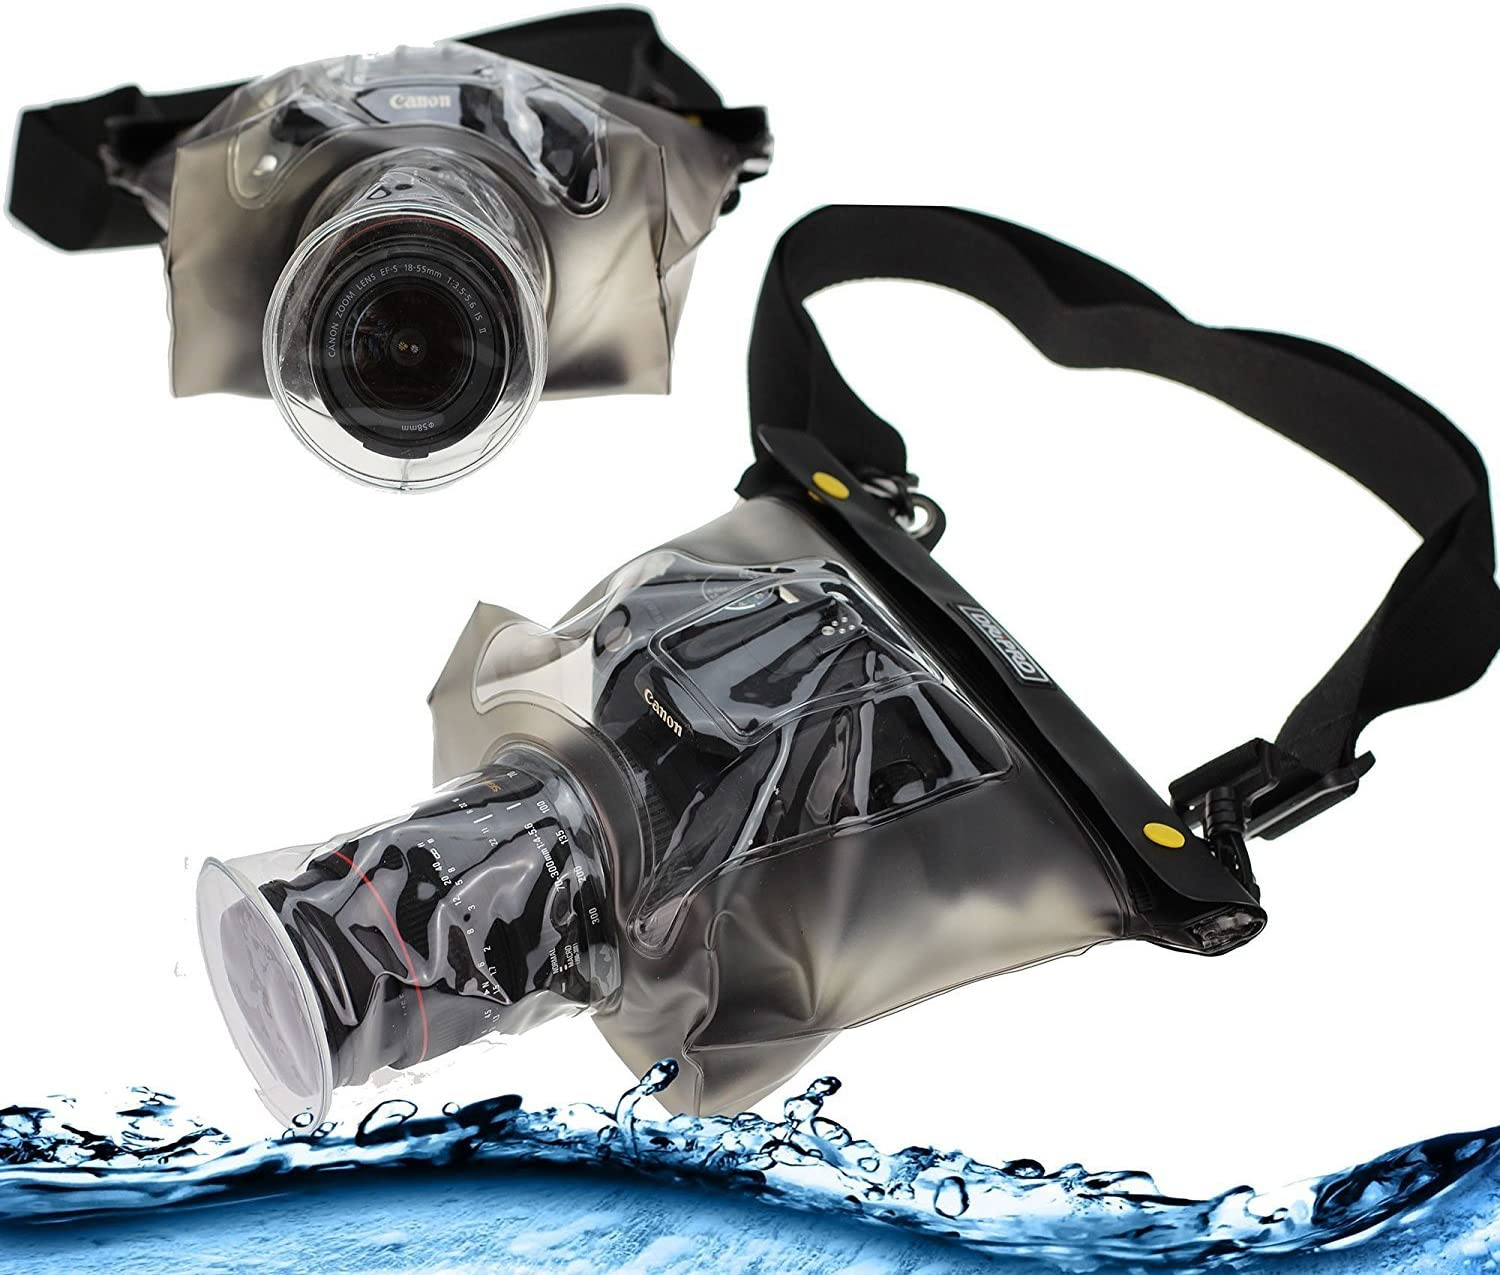 Navitech Black Waterproof Underwater Housing Case//Cover Pouch Dry Bag Compatible with The/Canon EOS 700D